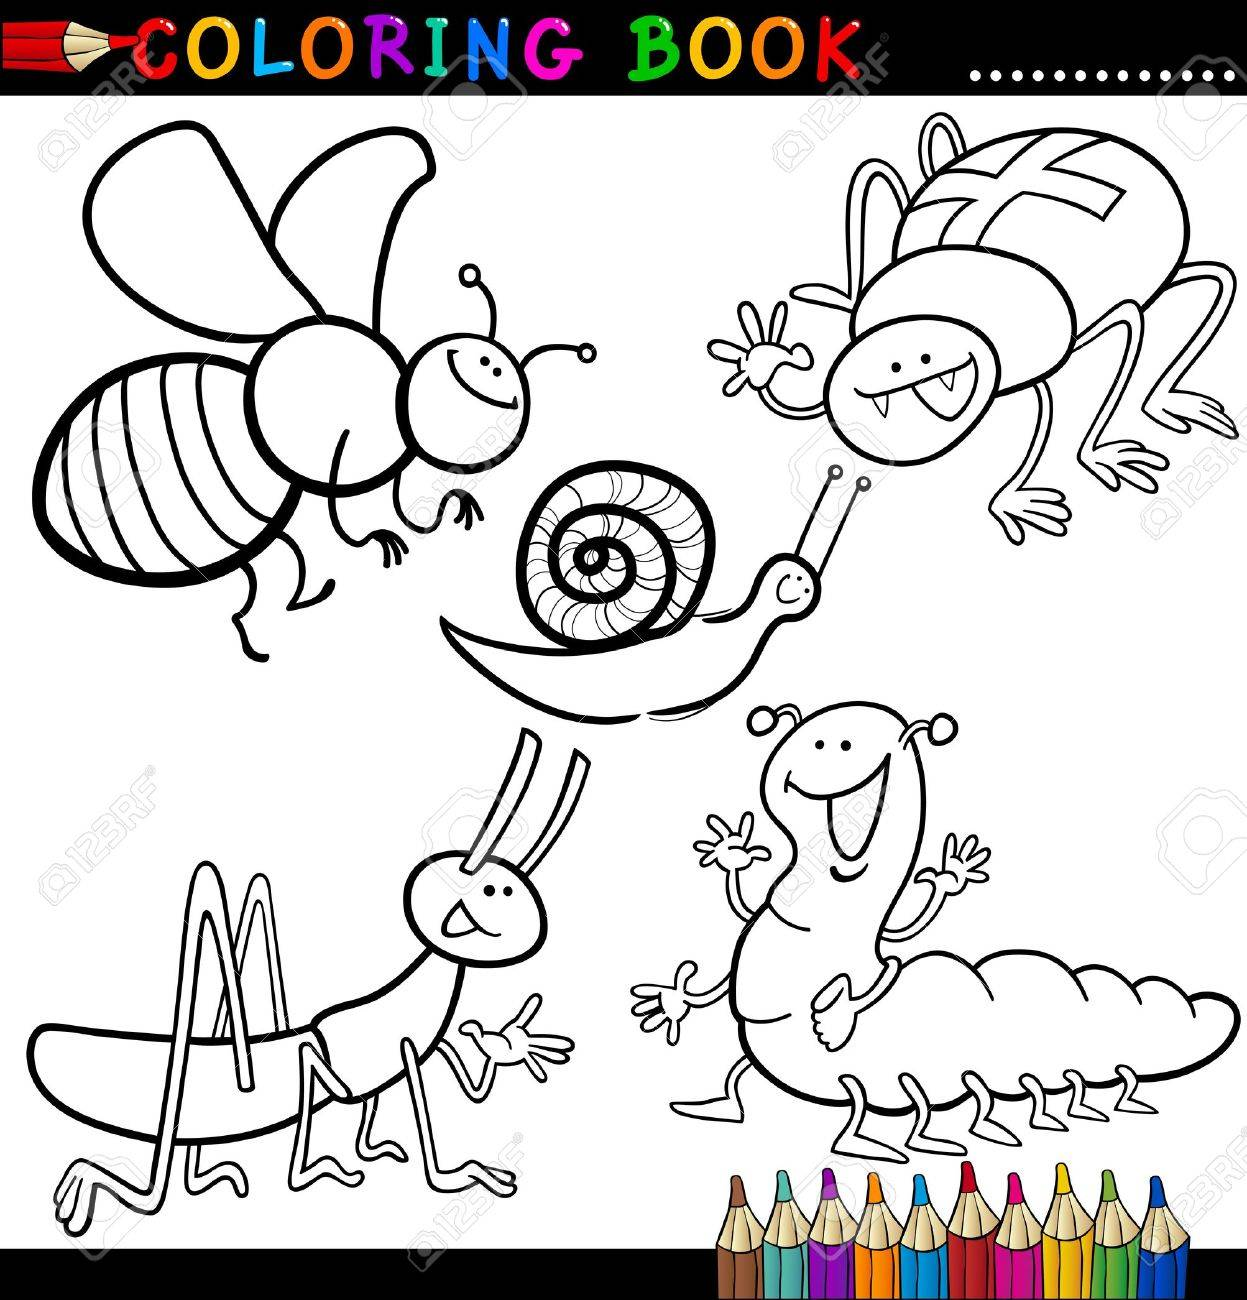 coloring book or page cartoon illustration of funny insects and